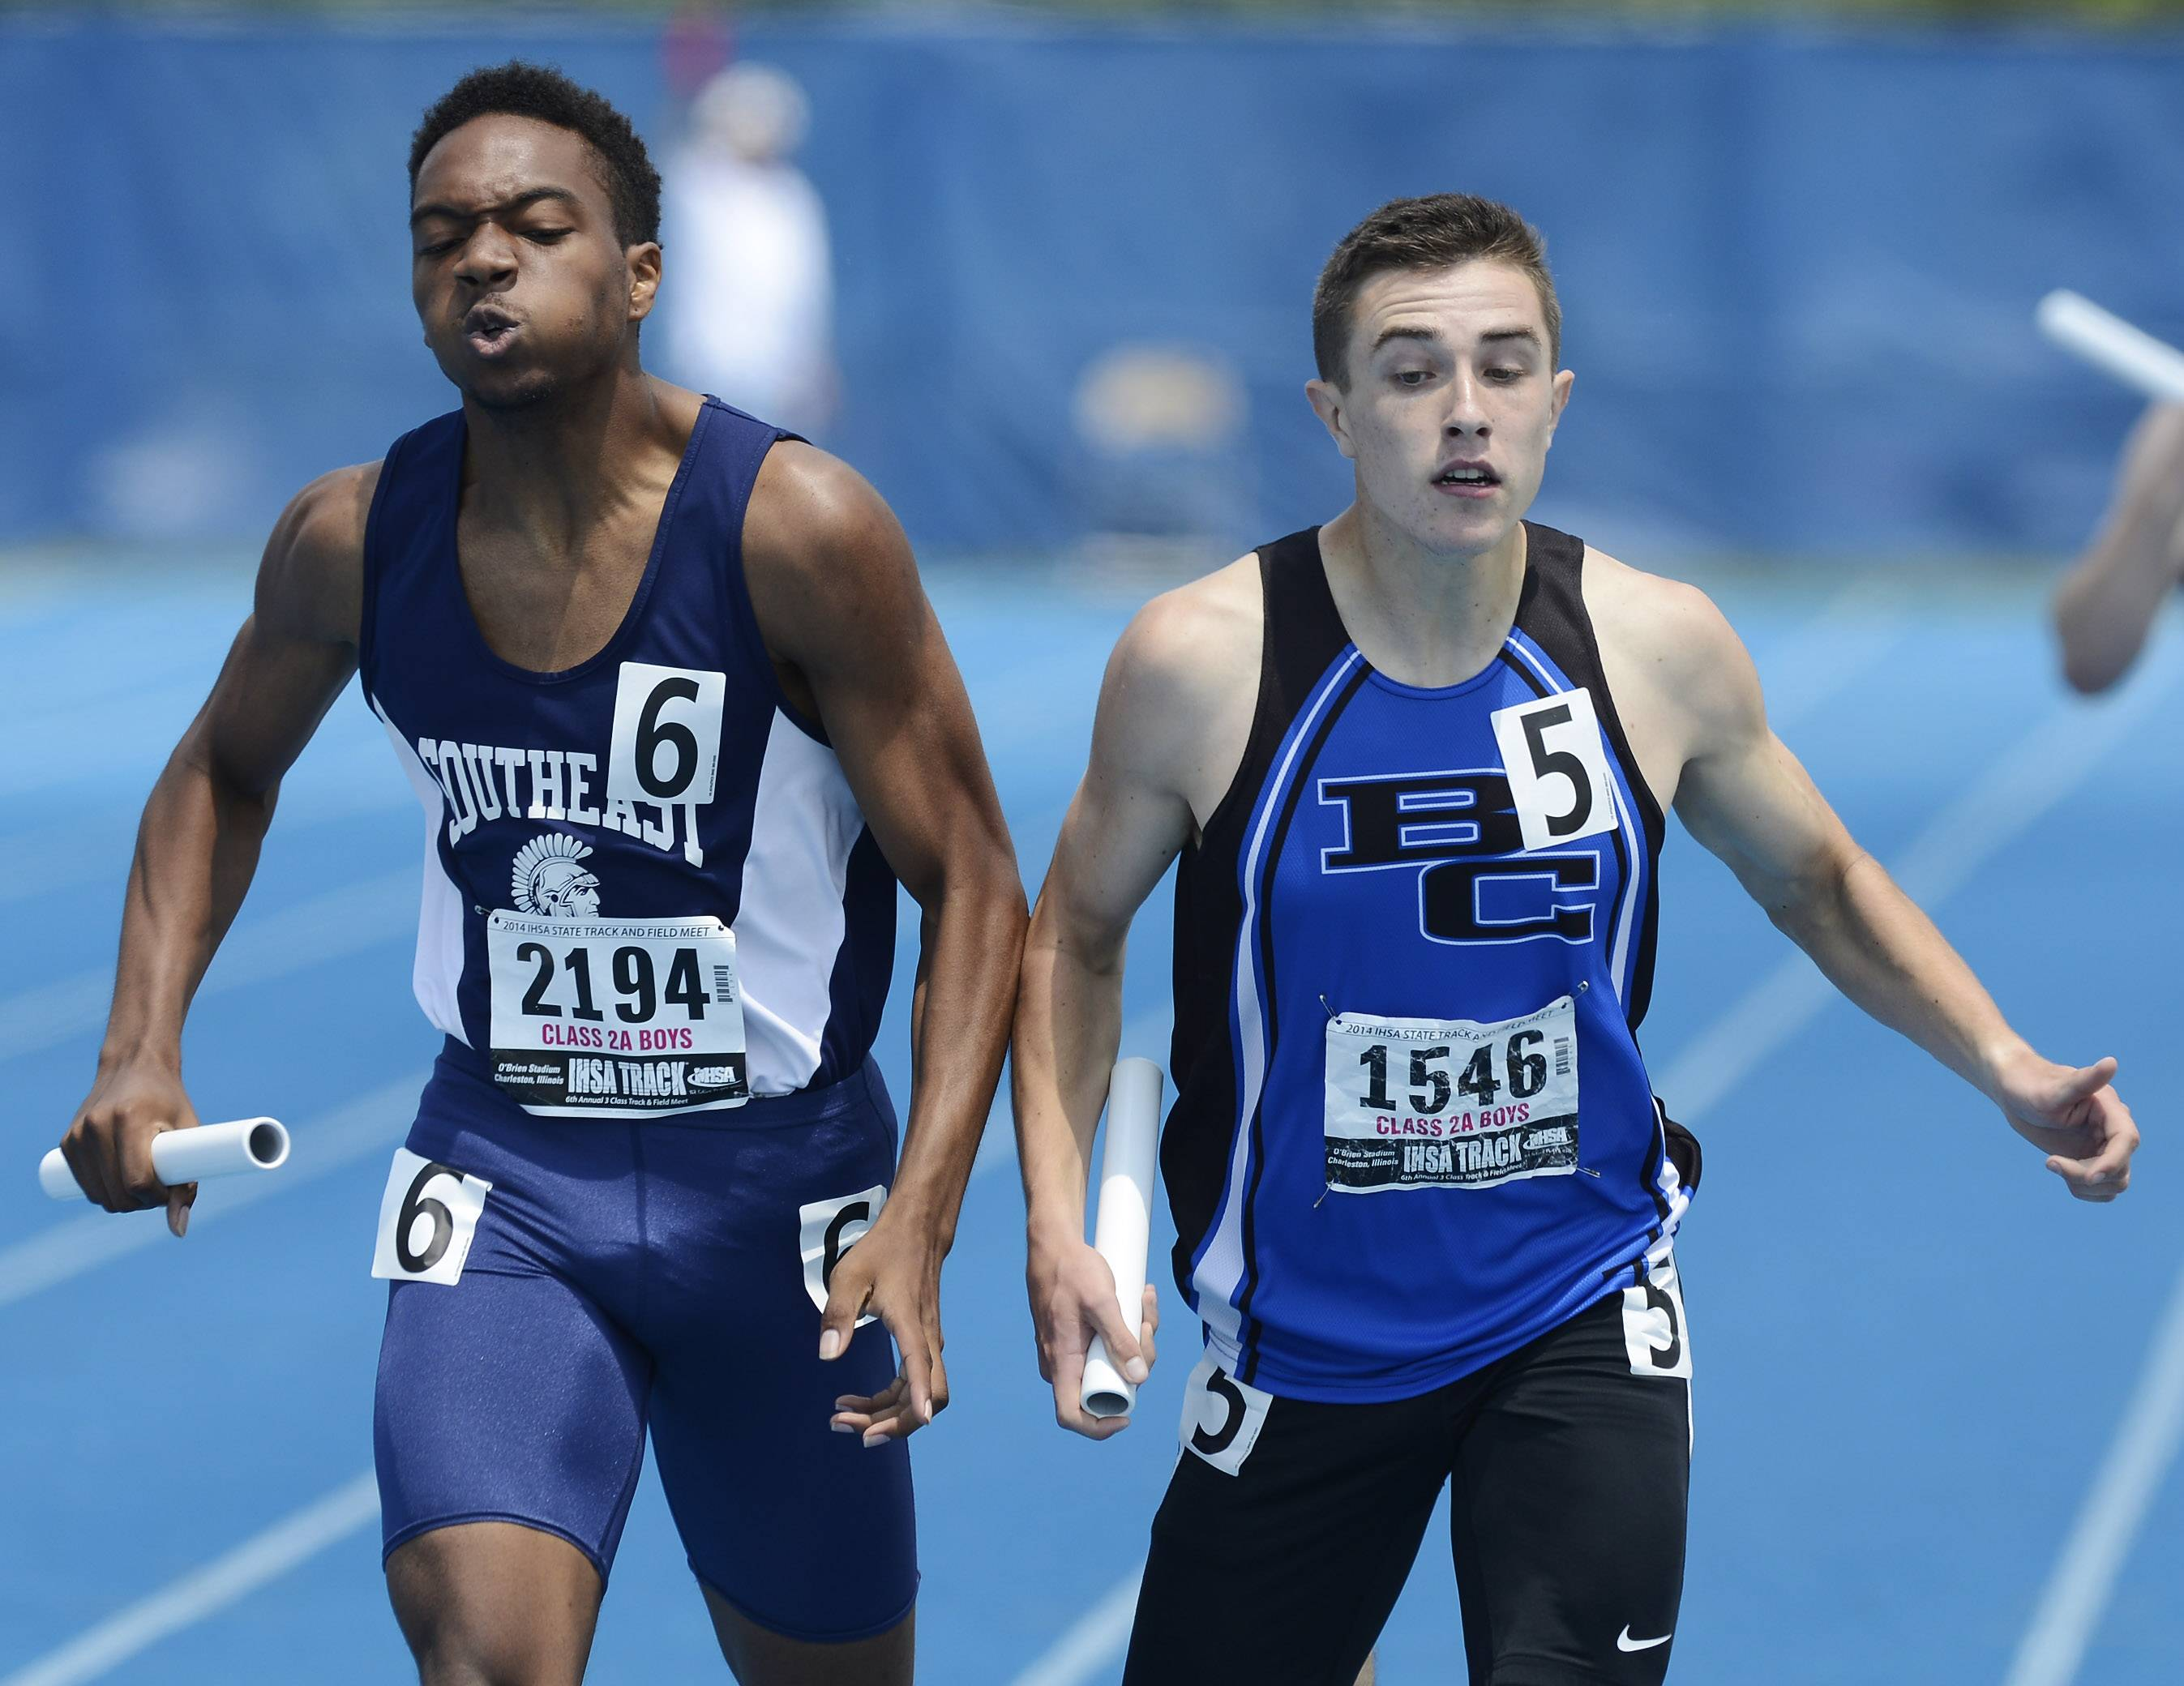 Matt O' Connor, right, of Burlington Central just edges Troy Bunch of Springfield Southeast at the finish of the 4x400-meter relay during the Class 2A boys state track and field preliminaries in Charleston Friday.